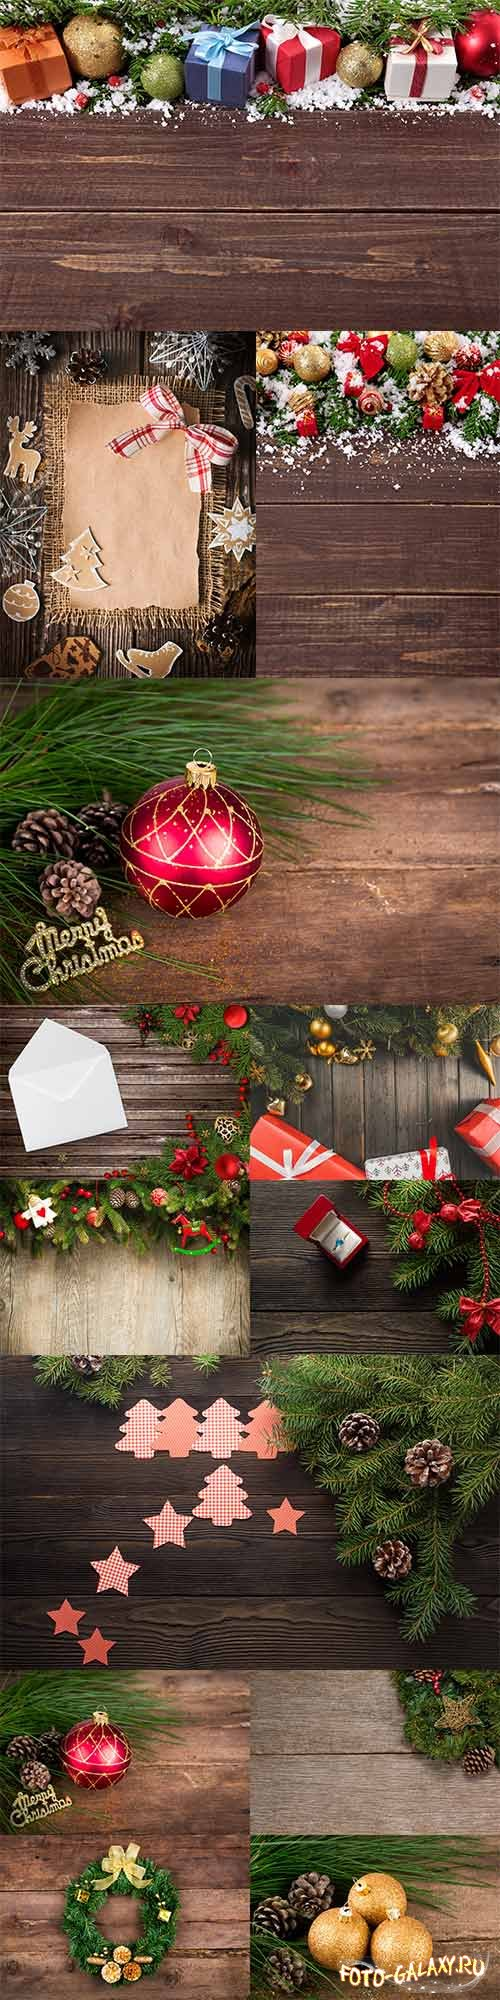 Wooden backgrounds with Christmas decorations